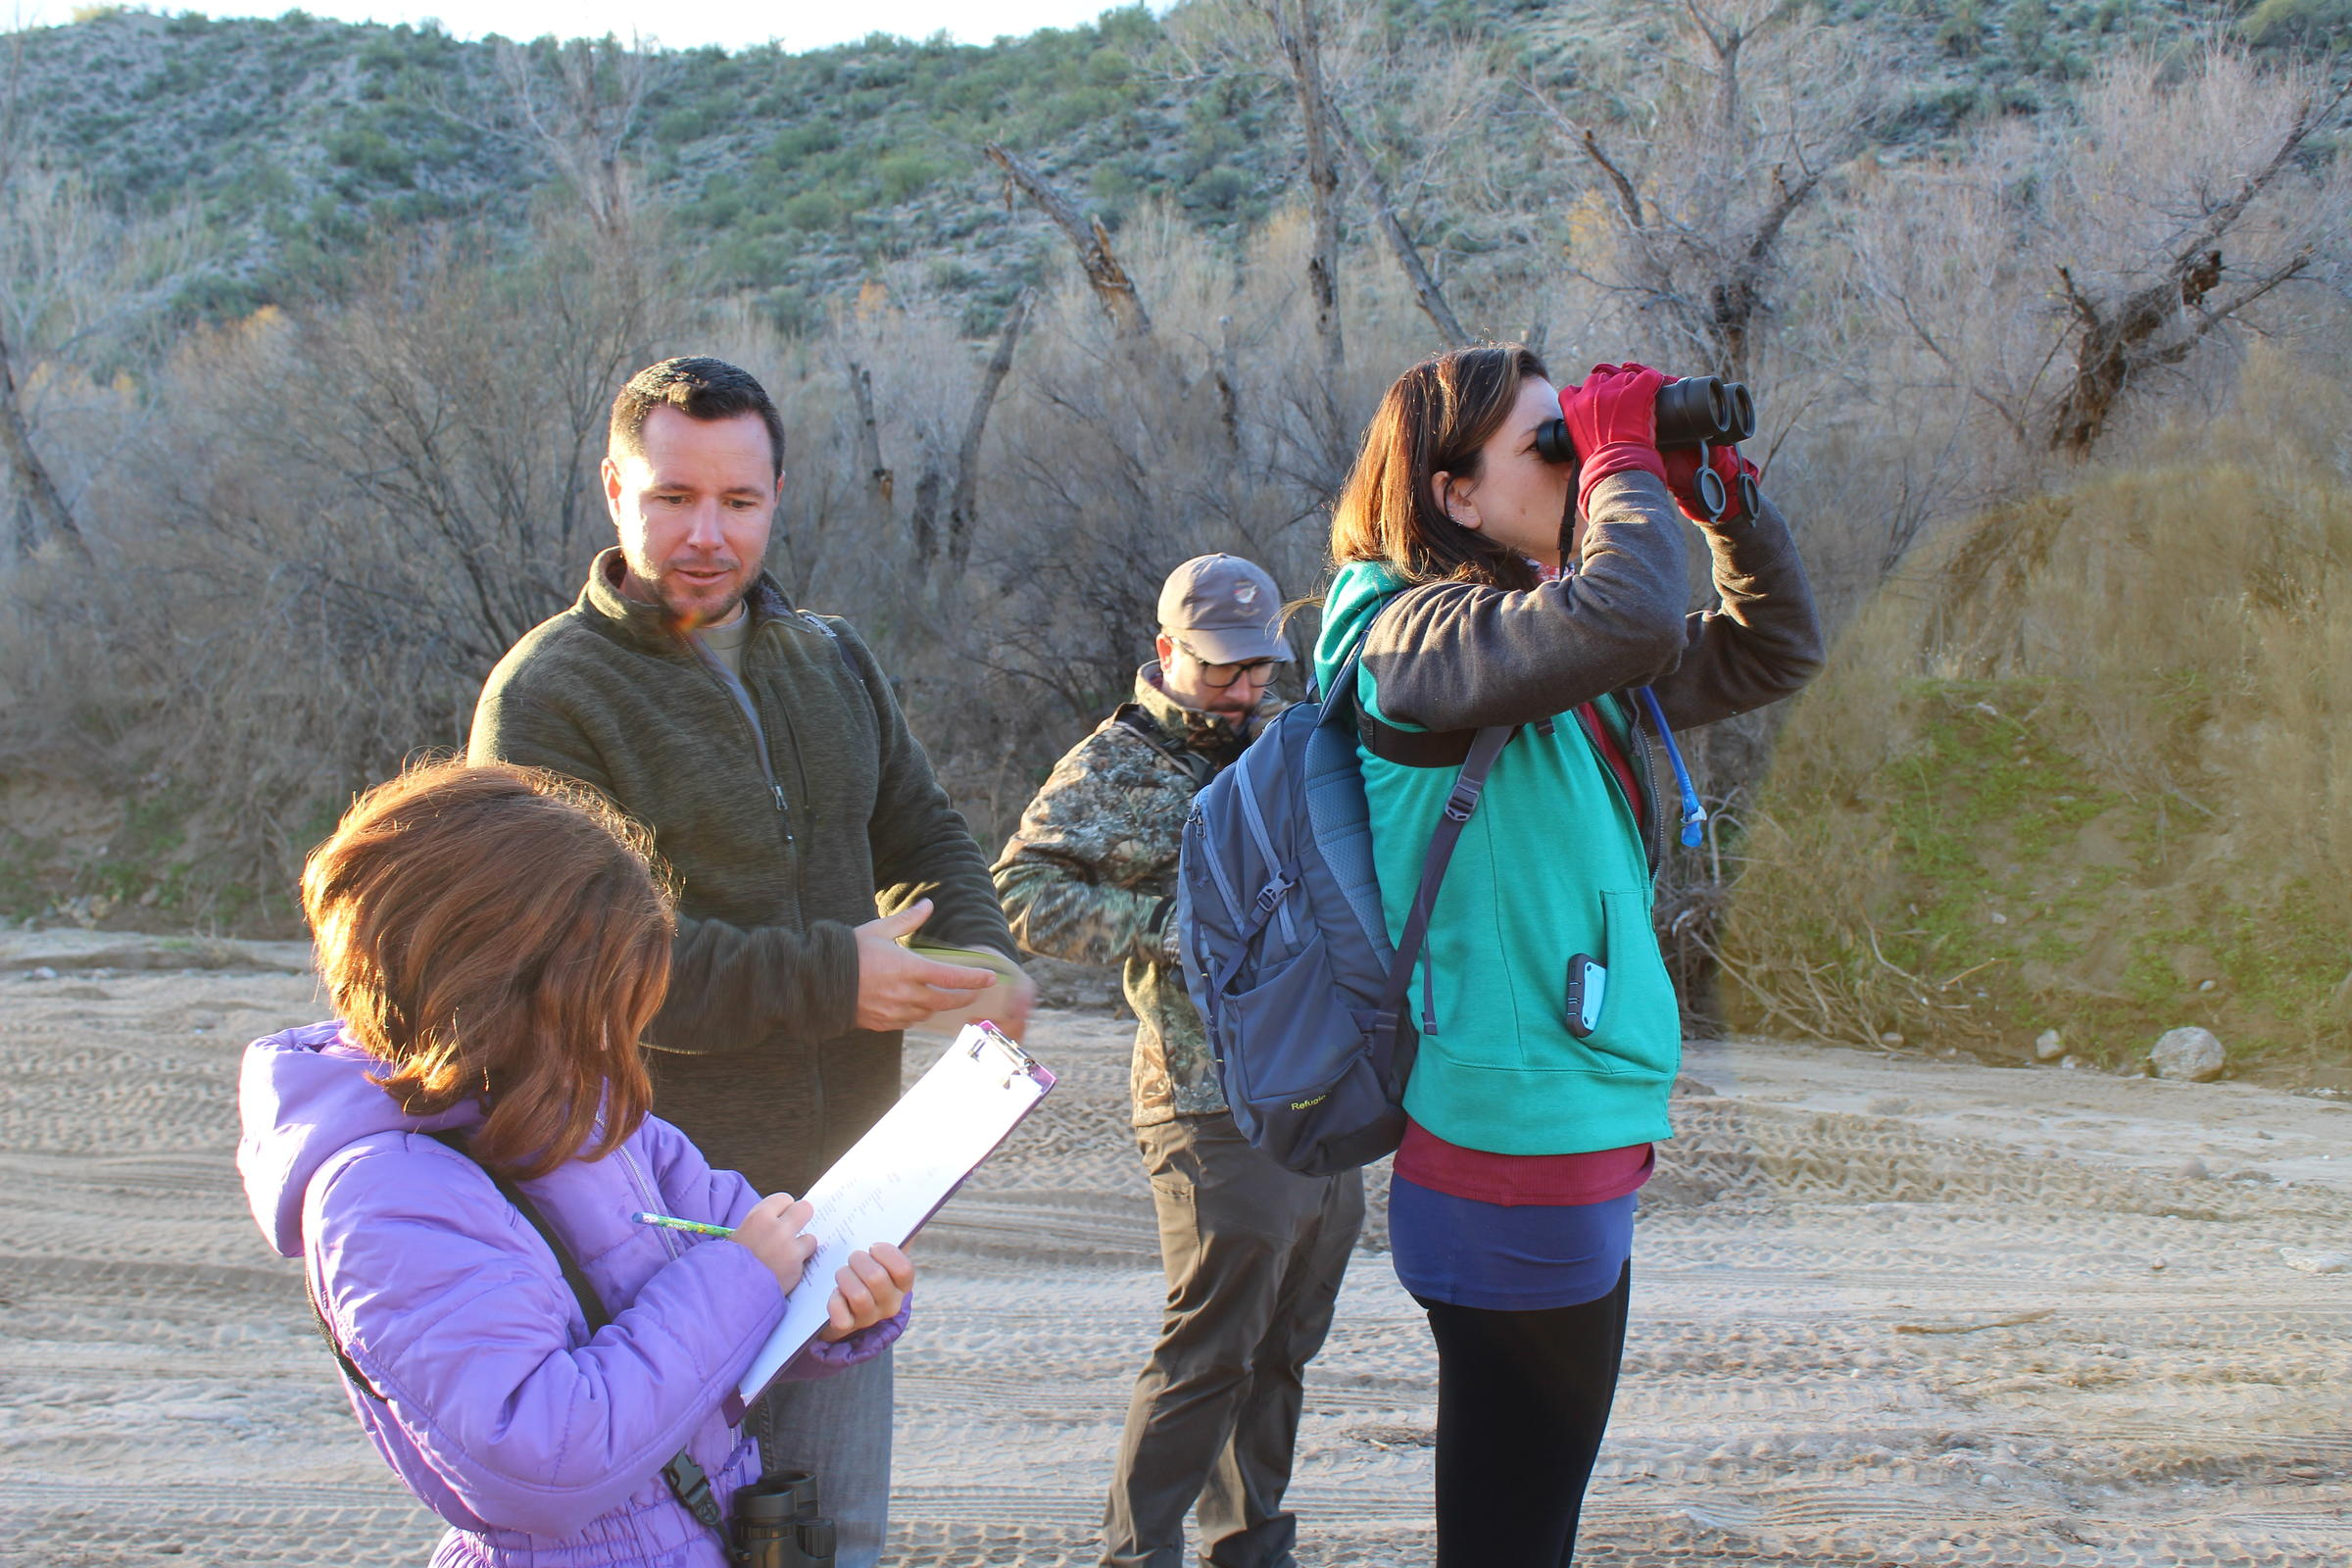 In a dry riverbed, a woman looks at a bird with binoculars while a little girl records the sighting on a piece of paper. Two men in the background get out their binoculars and field guide. It is sunny but also looks cold.